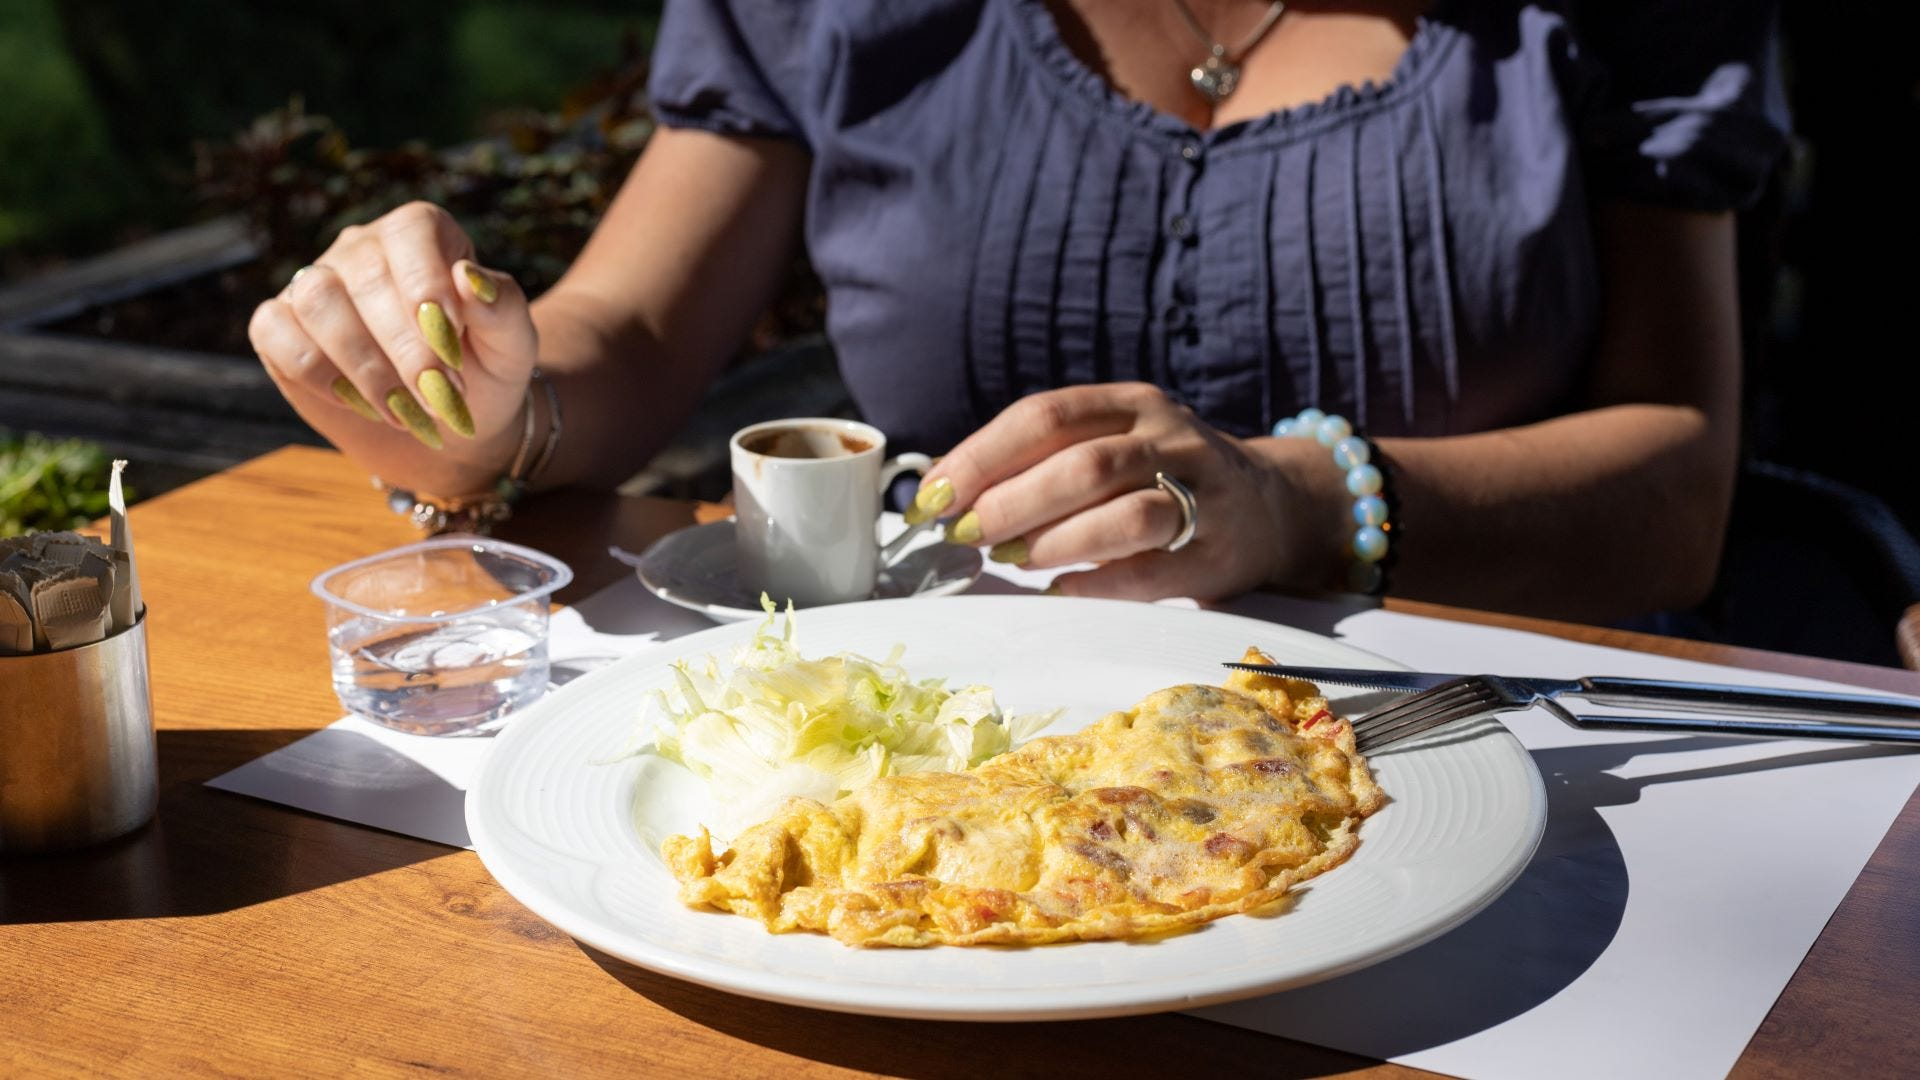 A woman having an omelet and coffee at an outdoor cafe.